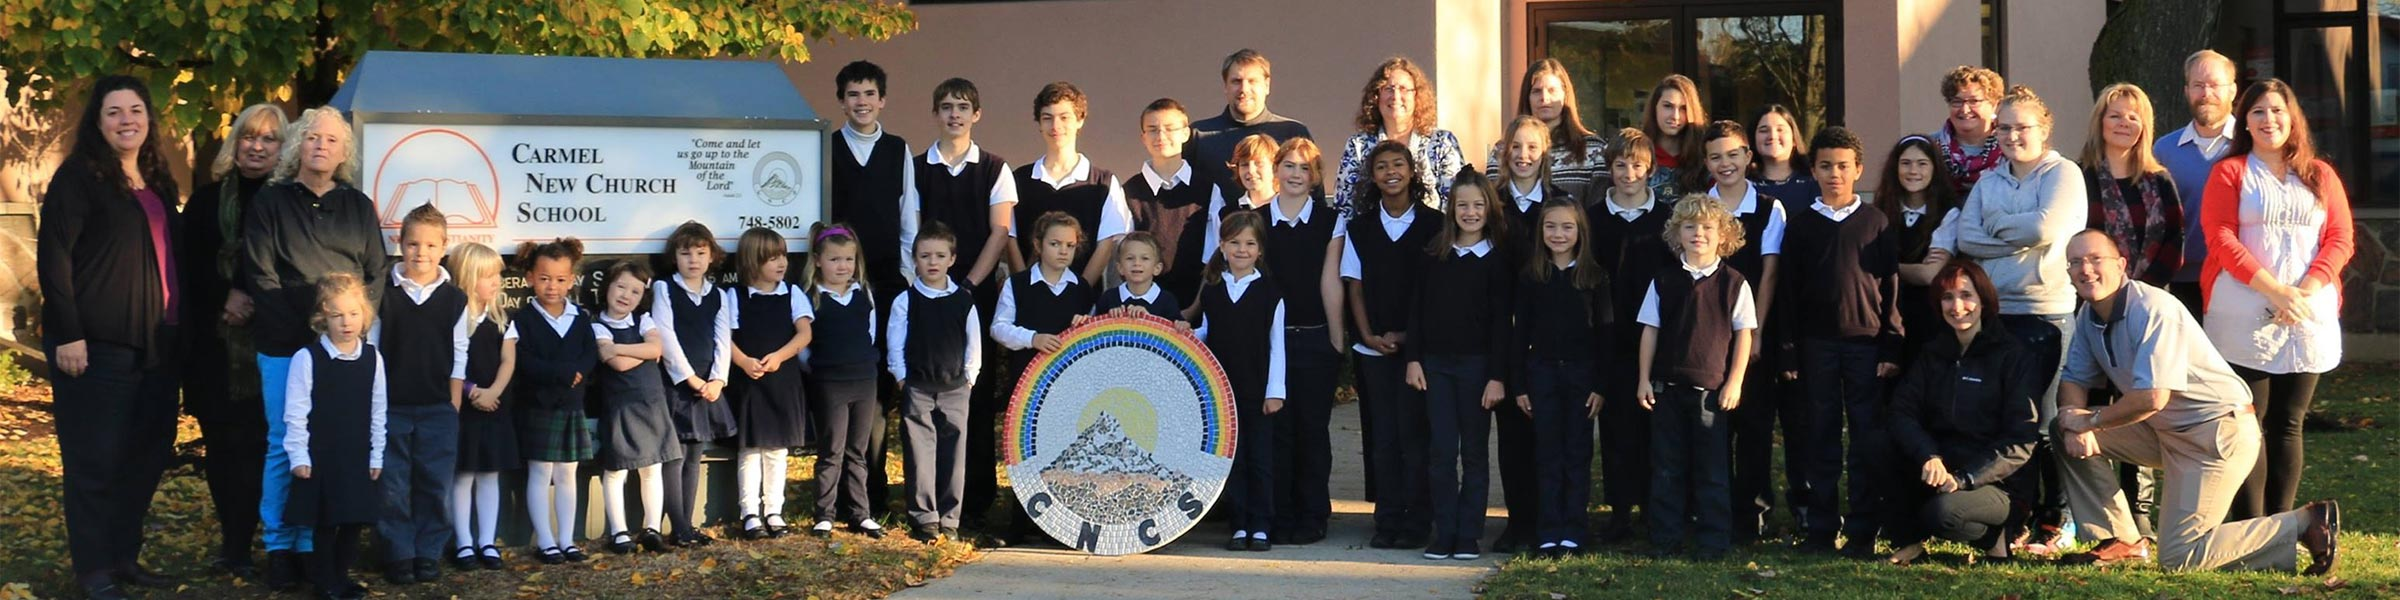 About Carmel New Church School (2)